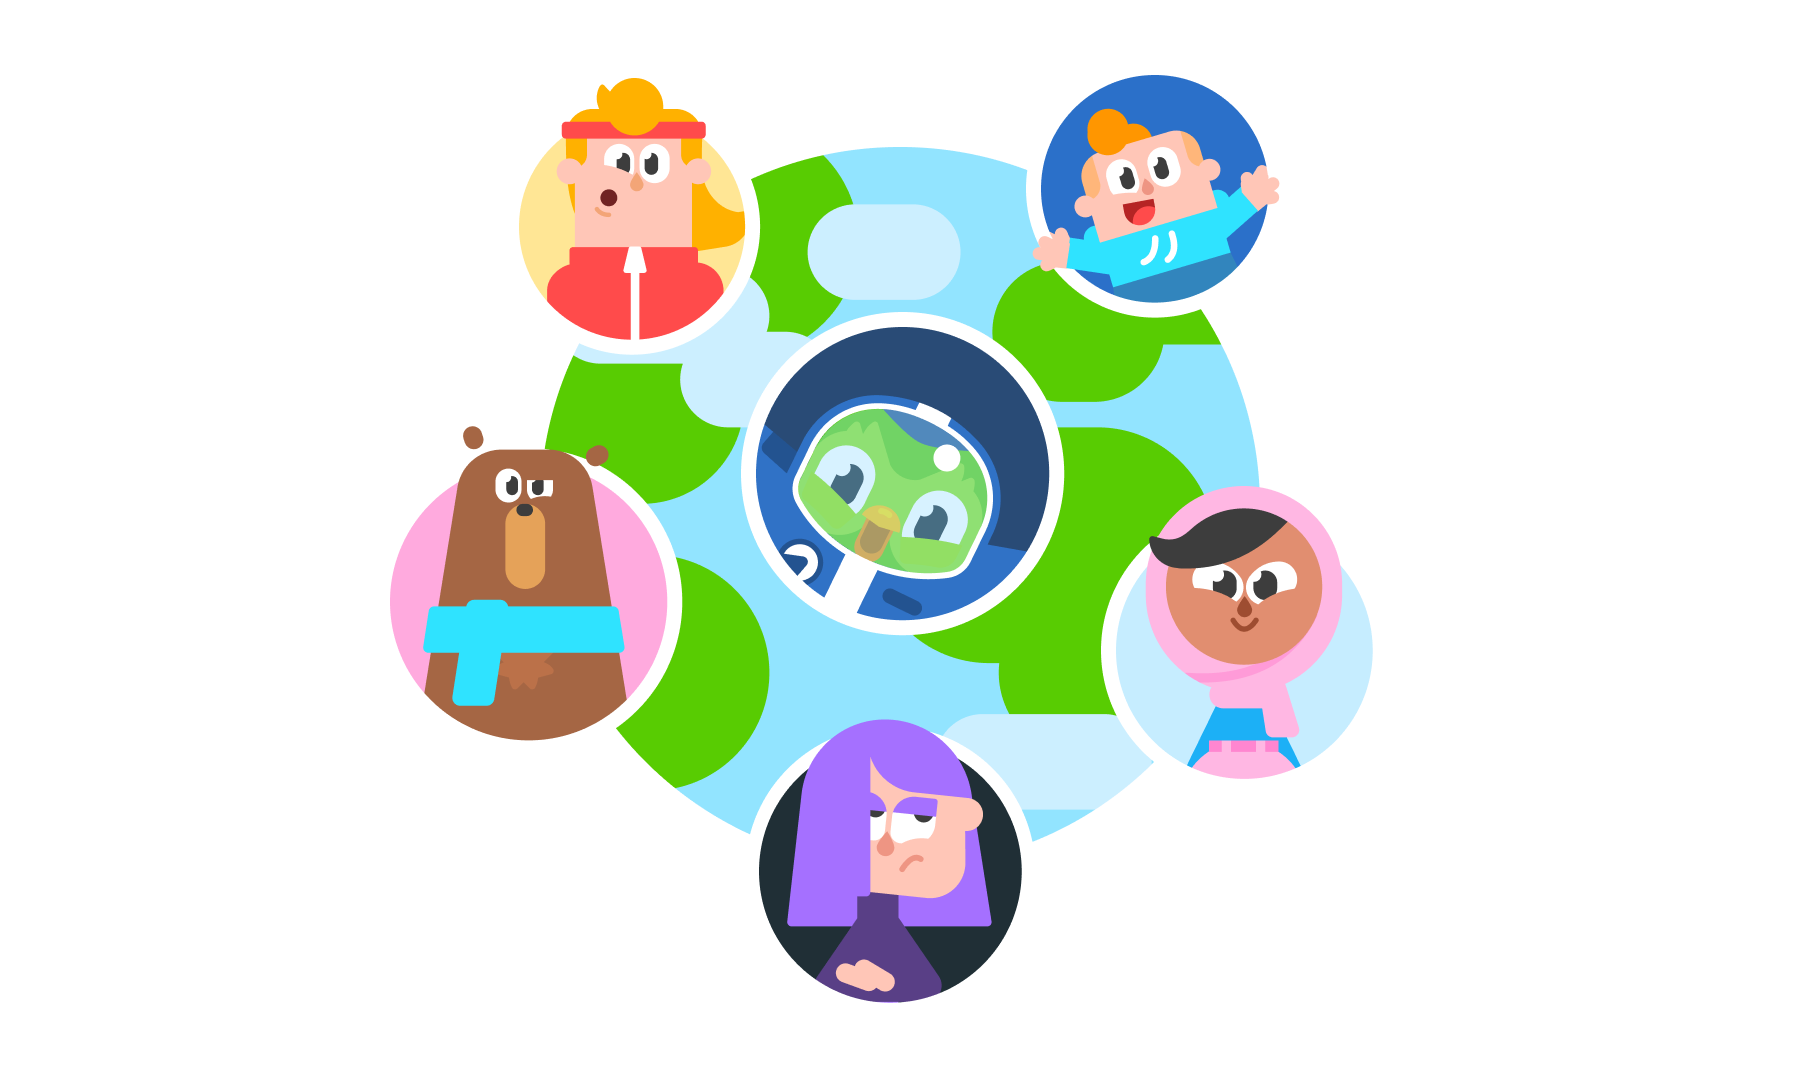 Illustration of the Earth as seen from space, with Duo the Duolingo owl mascot at the center in a space suit and five Duolingo characters in an orbit around him.